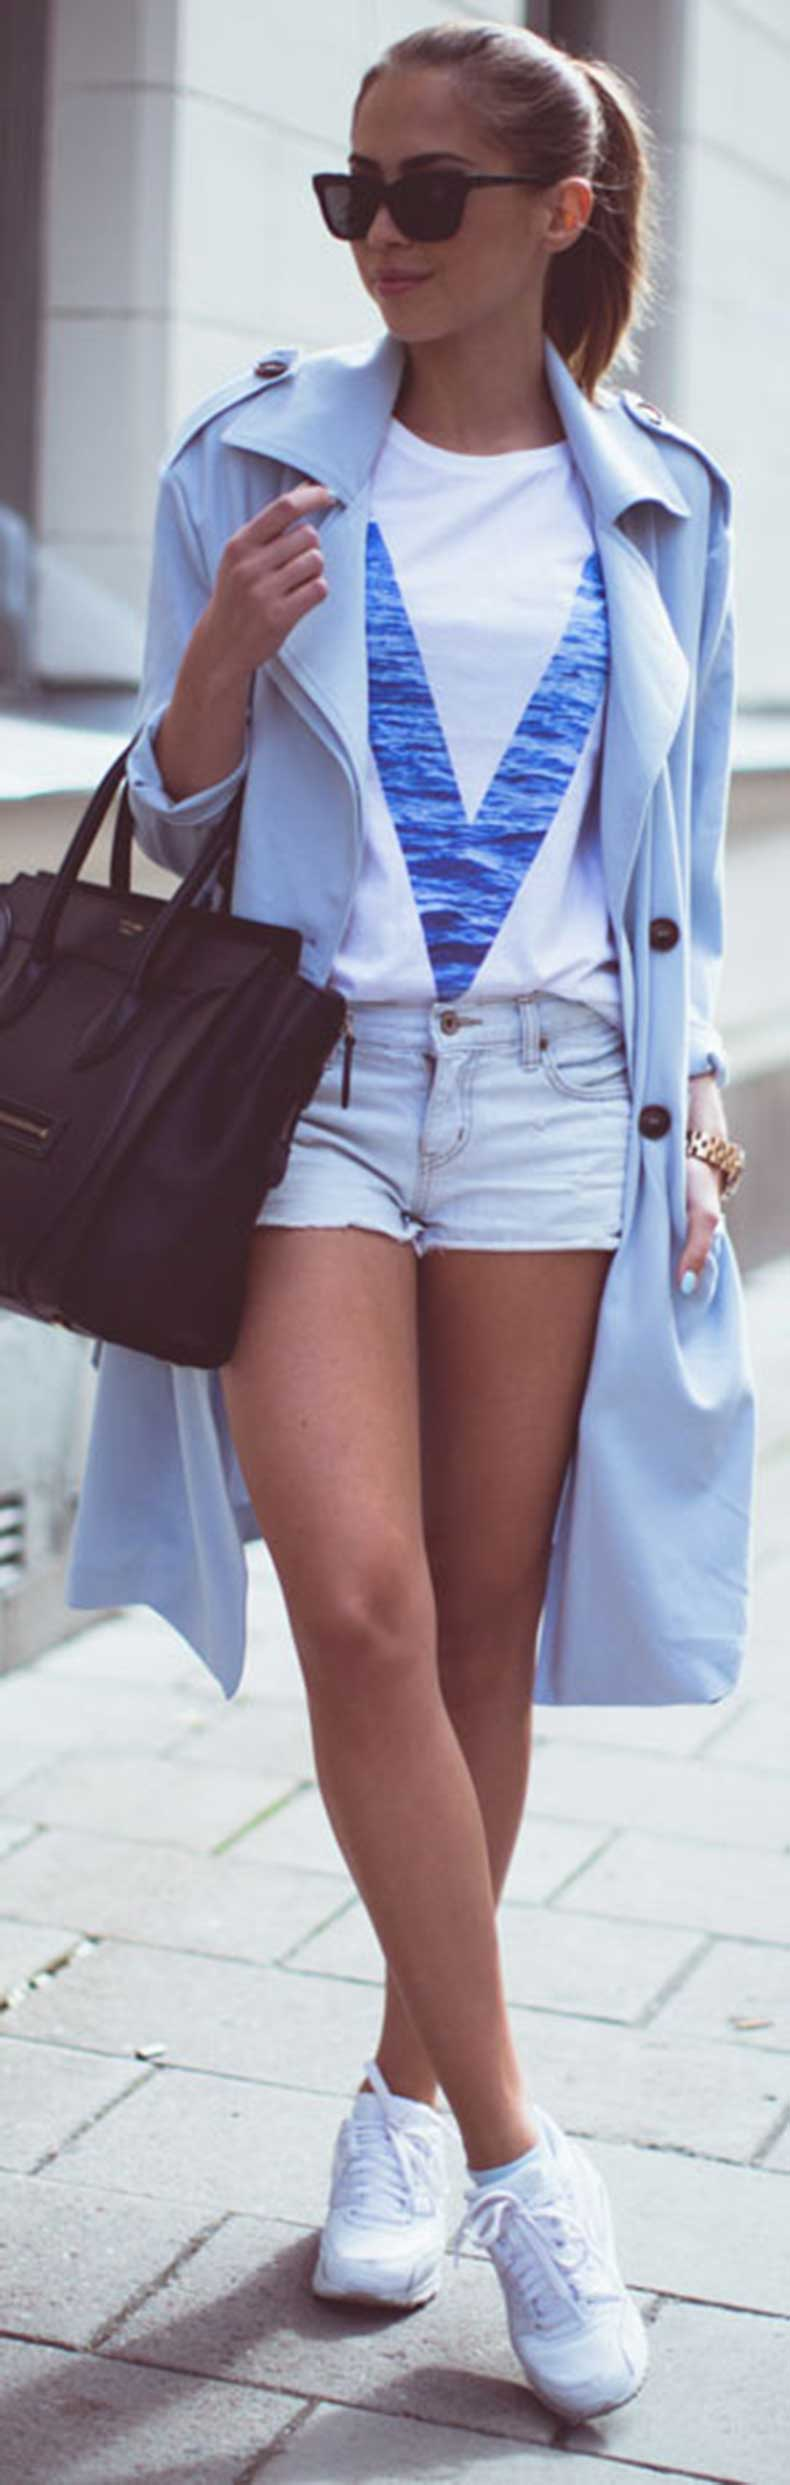 Long-Trench-Coat-Casual-Spring-Outfit